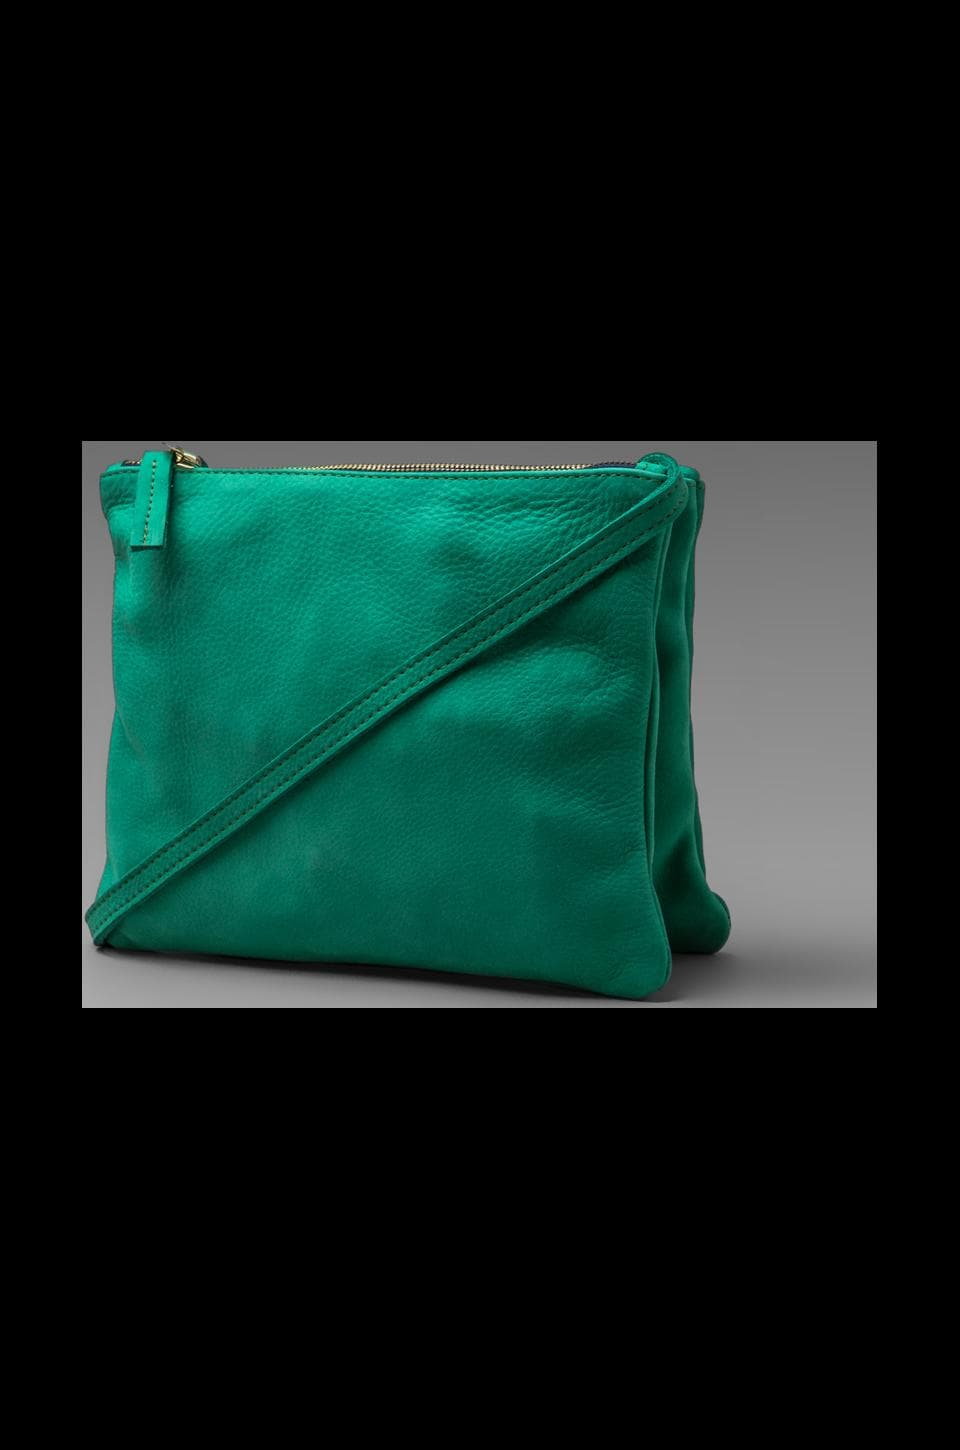 Clare V. Maison Sac Brettele in Kelly Green Nubuck